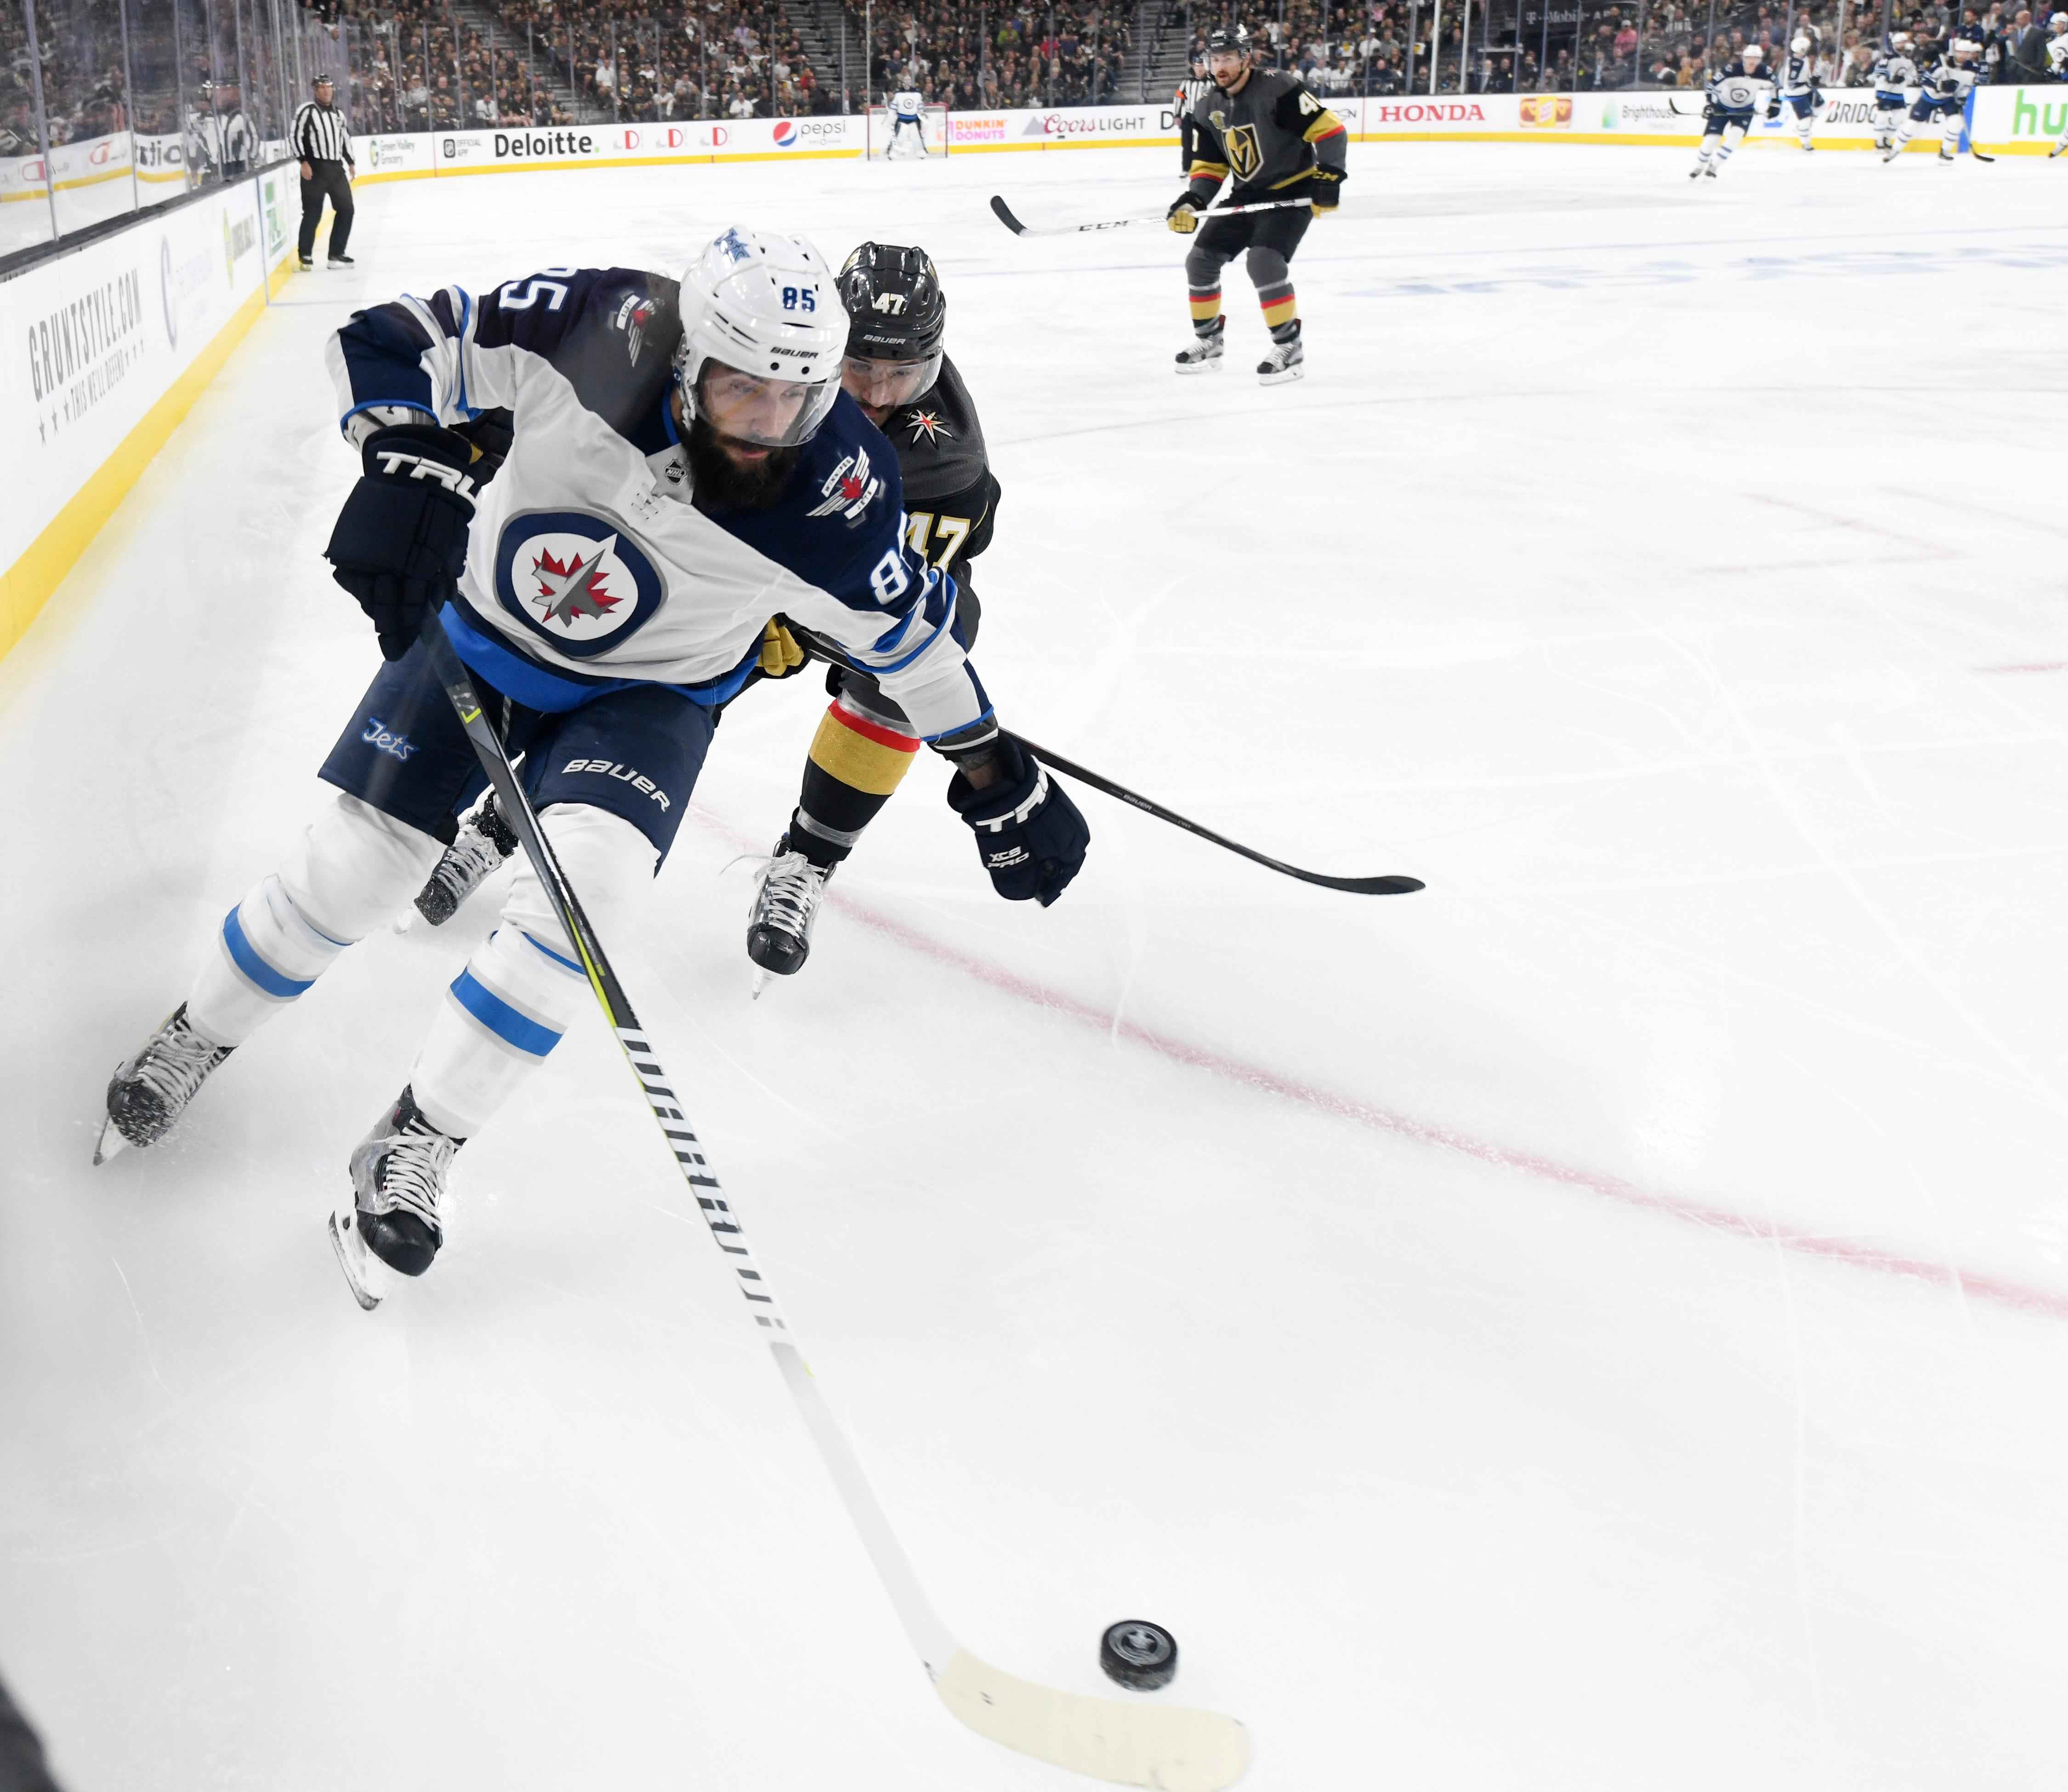 Vegas Golden Knights defenseman Luca Sbisa (47) chases Winnipeg Jets center Mathieu Perreault (85) during Game 3 of their NHL hockey Western Conference Final game Wednesday, May 16, 2018, at T-Mobile Arena. CREDIT: Sam Morris/Las Vegas News Bureau